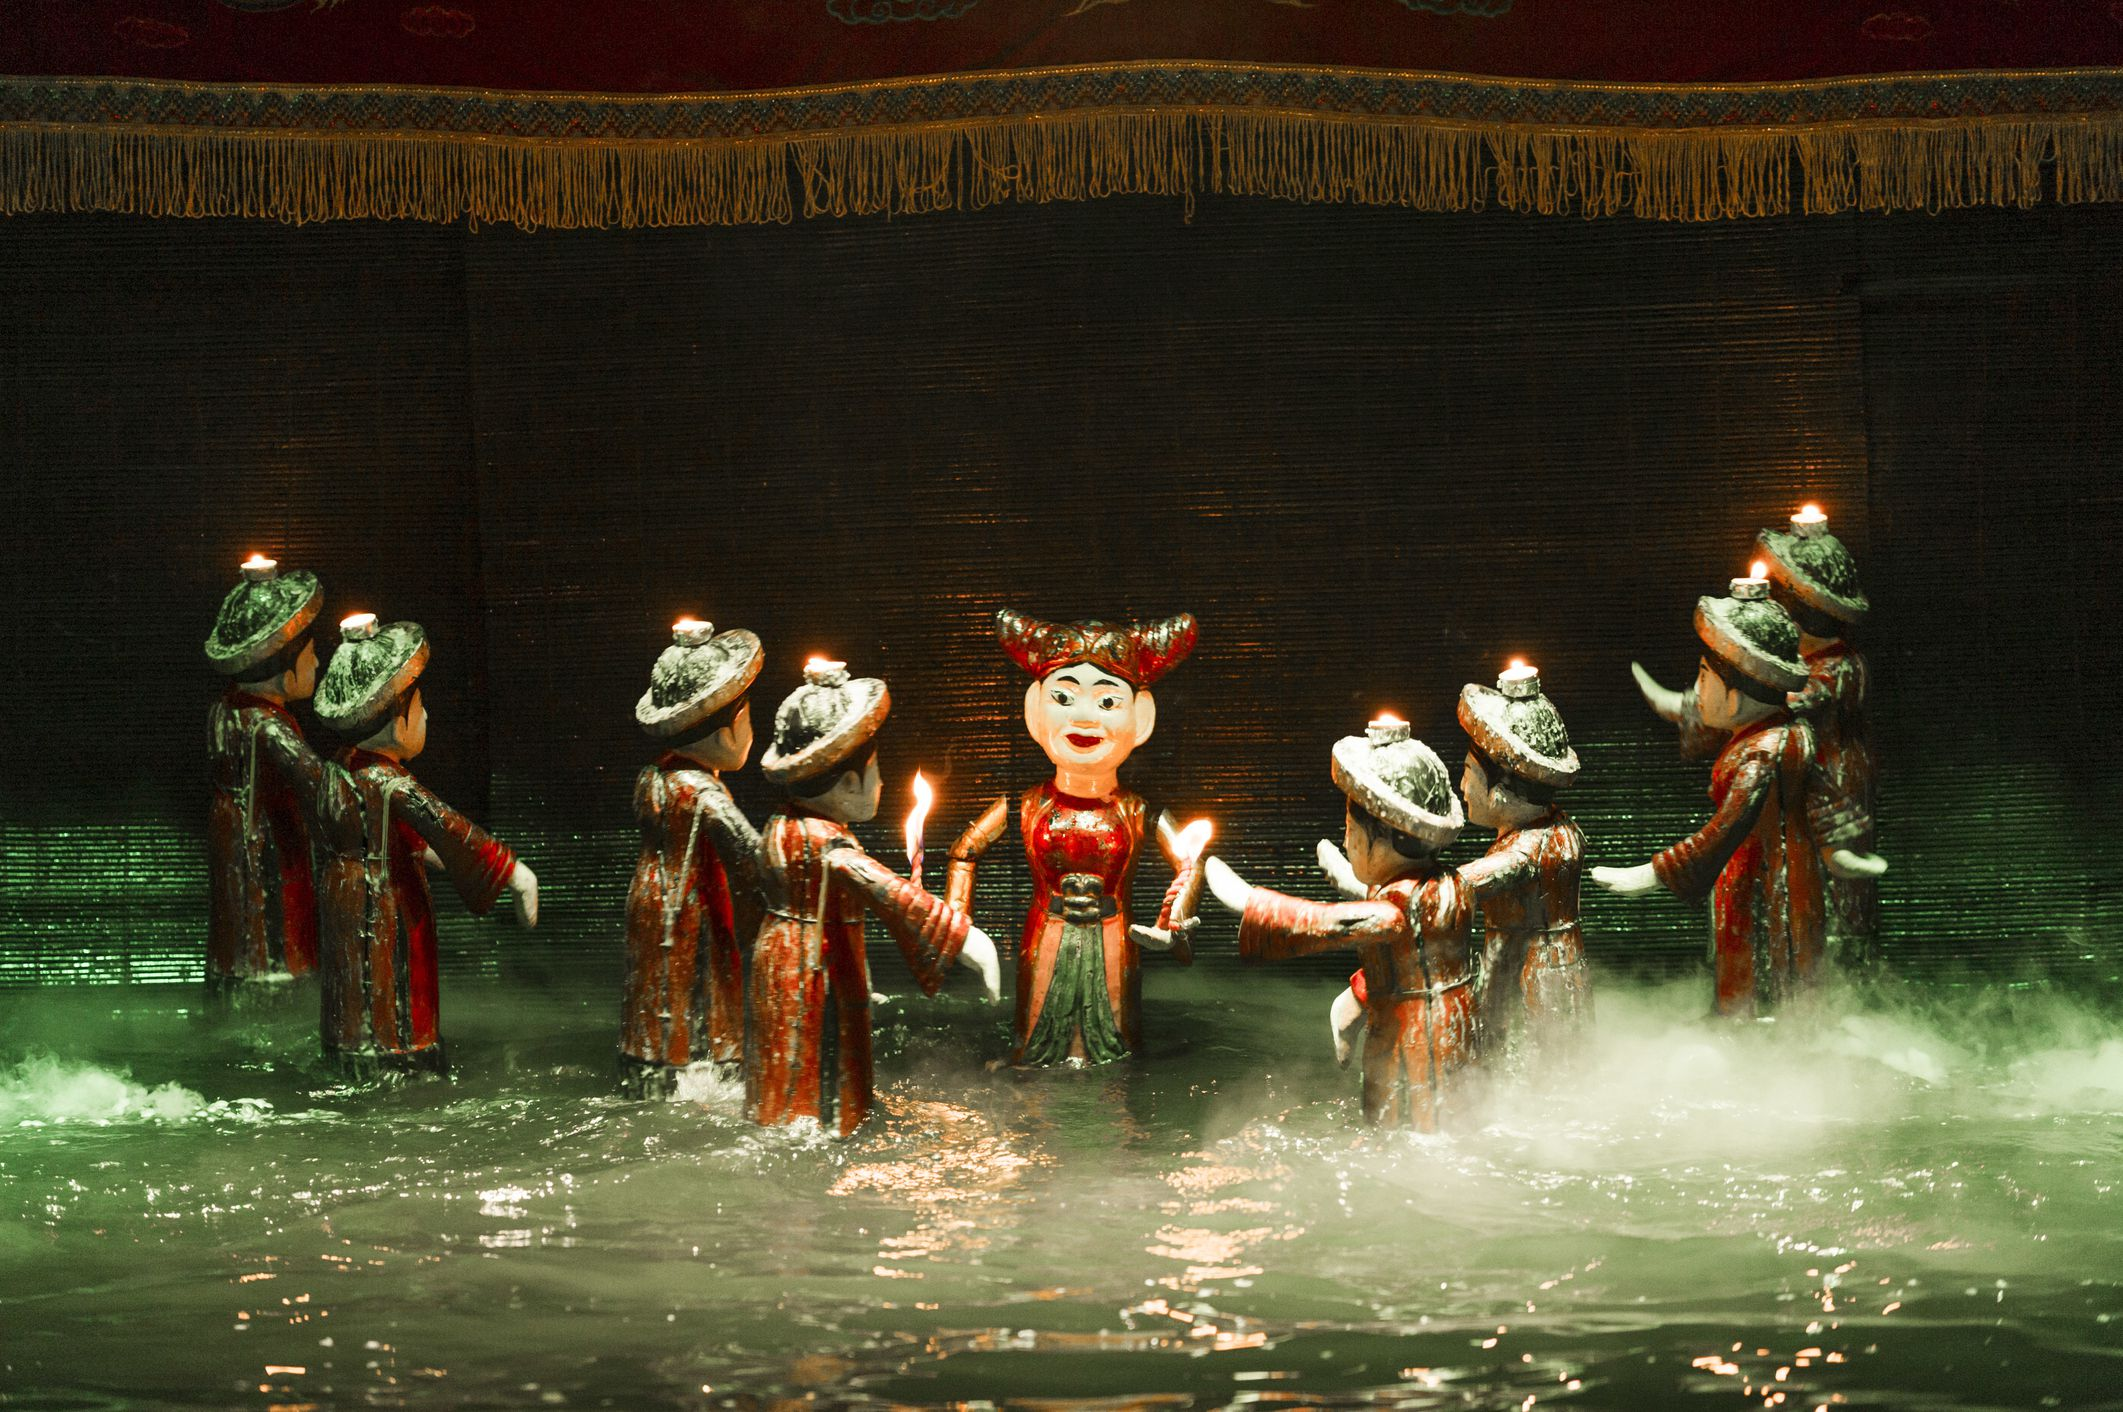 Vietnam's Traditionally Quirky Water Puppet Shows